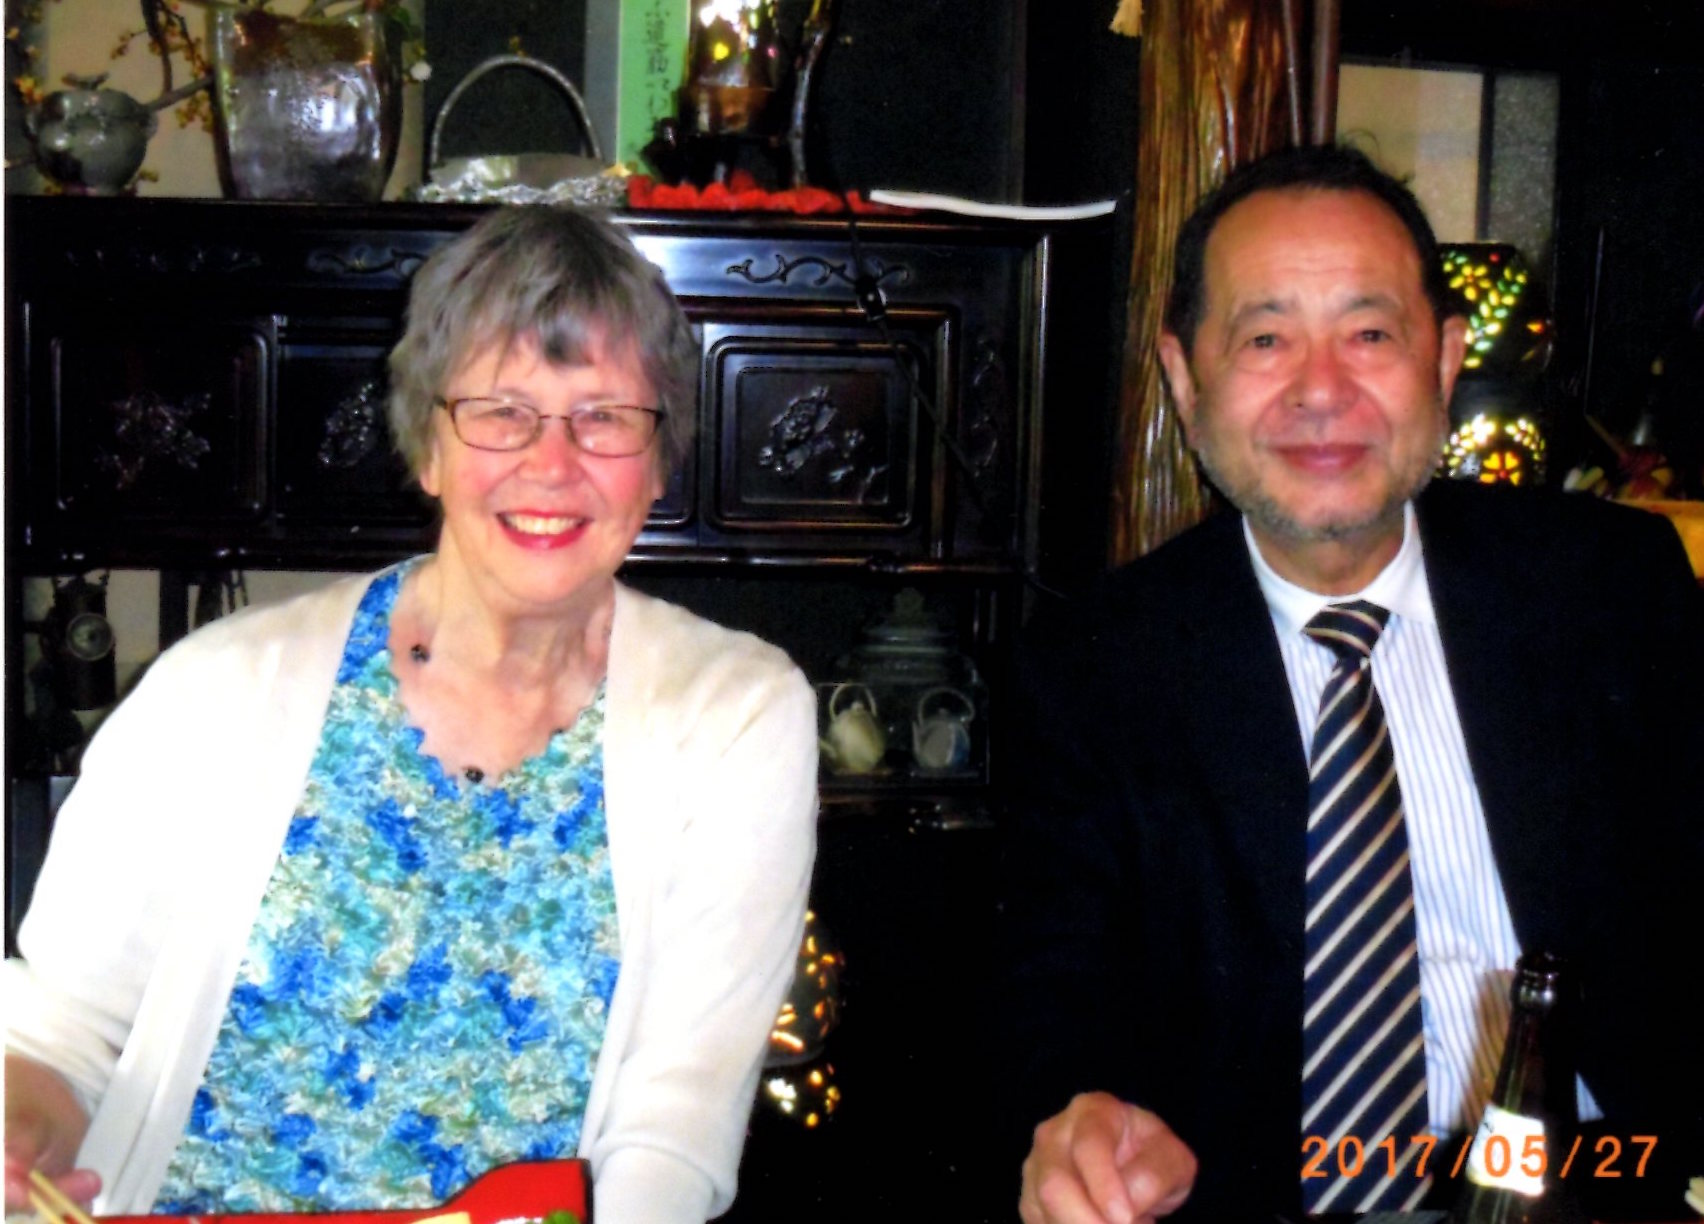 Author, Roberta Stephens and Afterword Author Mr. Komei Sasaki